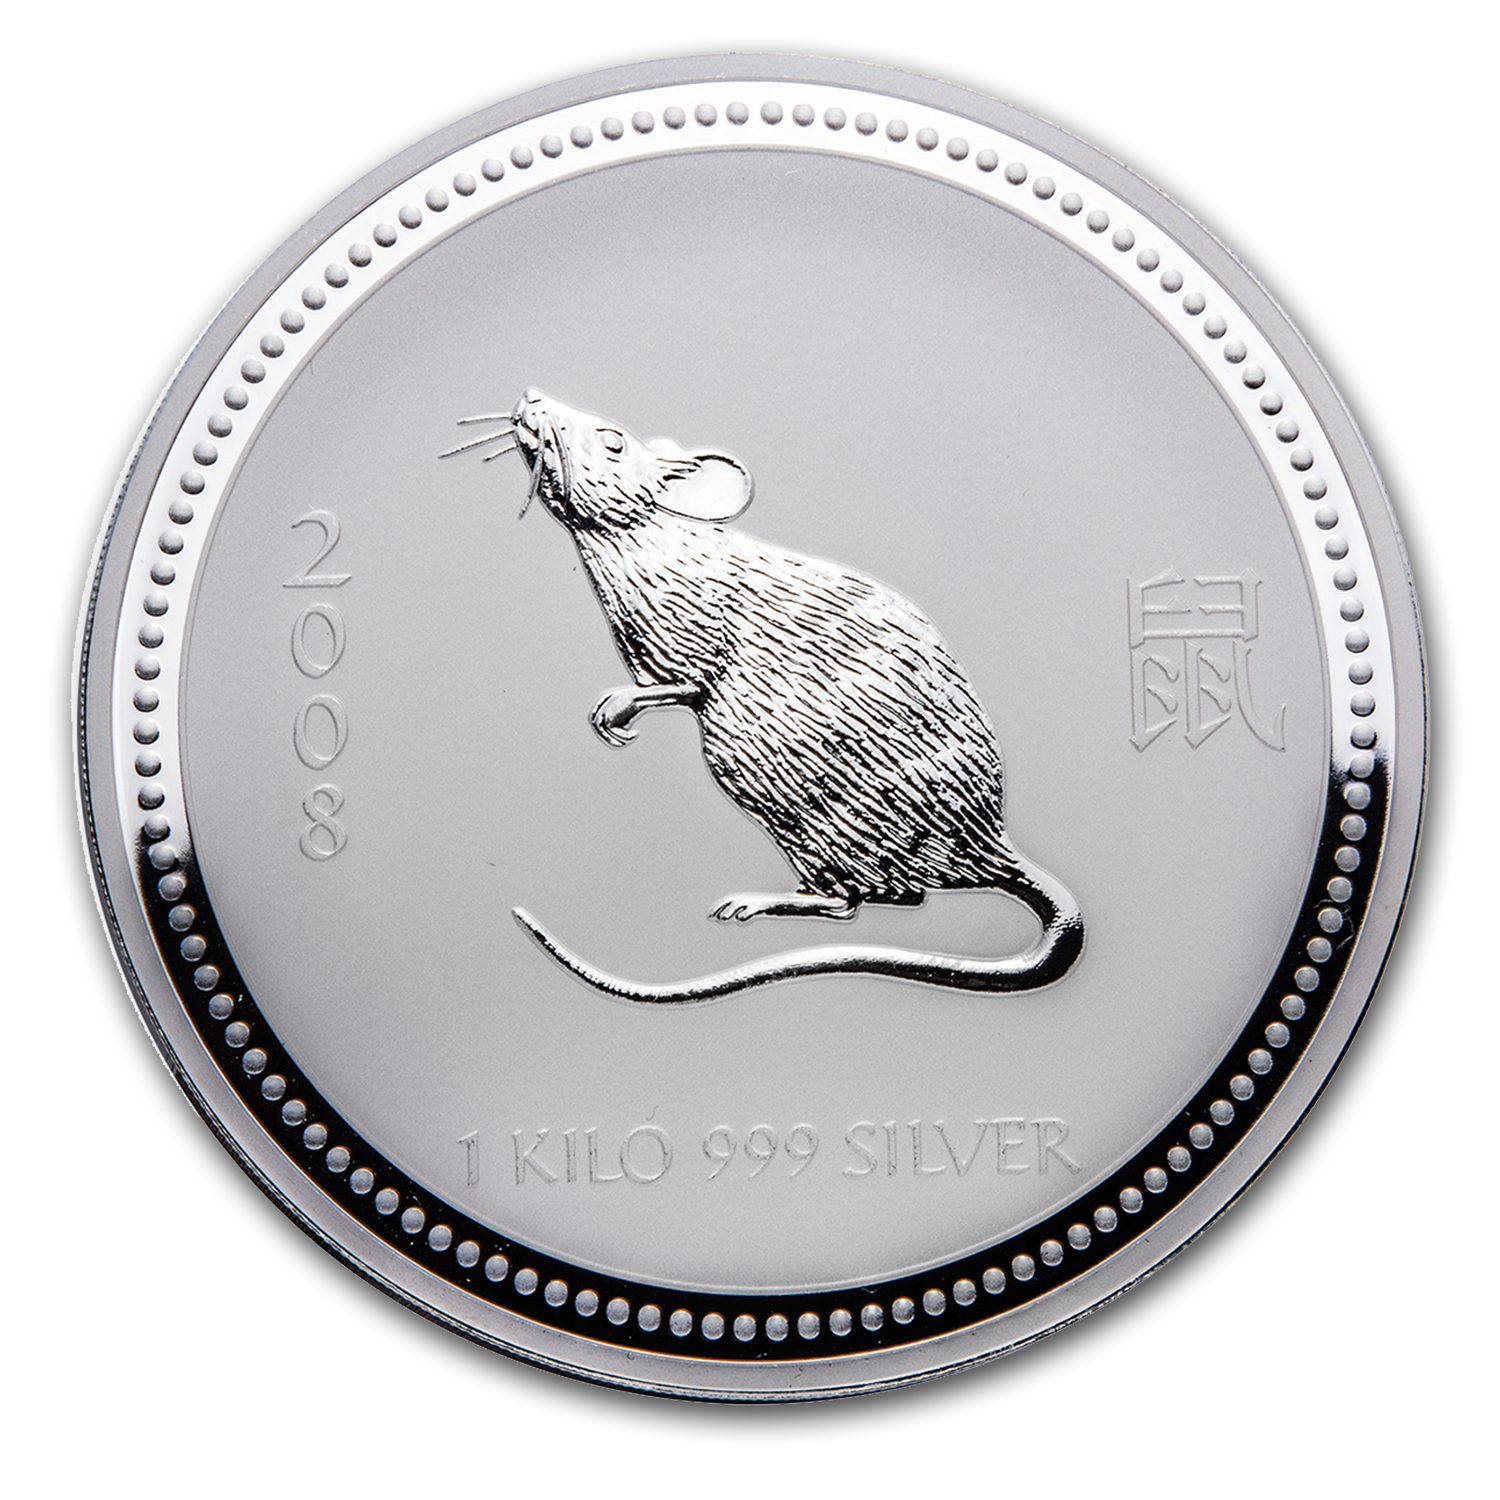 2008 1 Kilo Silver Australian Year of the Mouse BU (Series I)